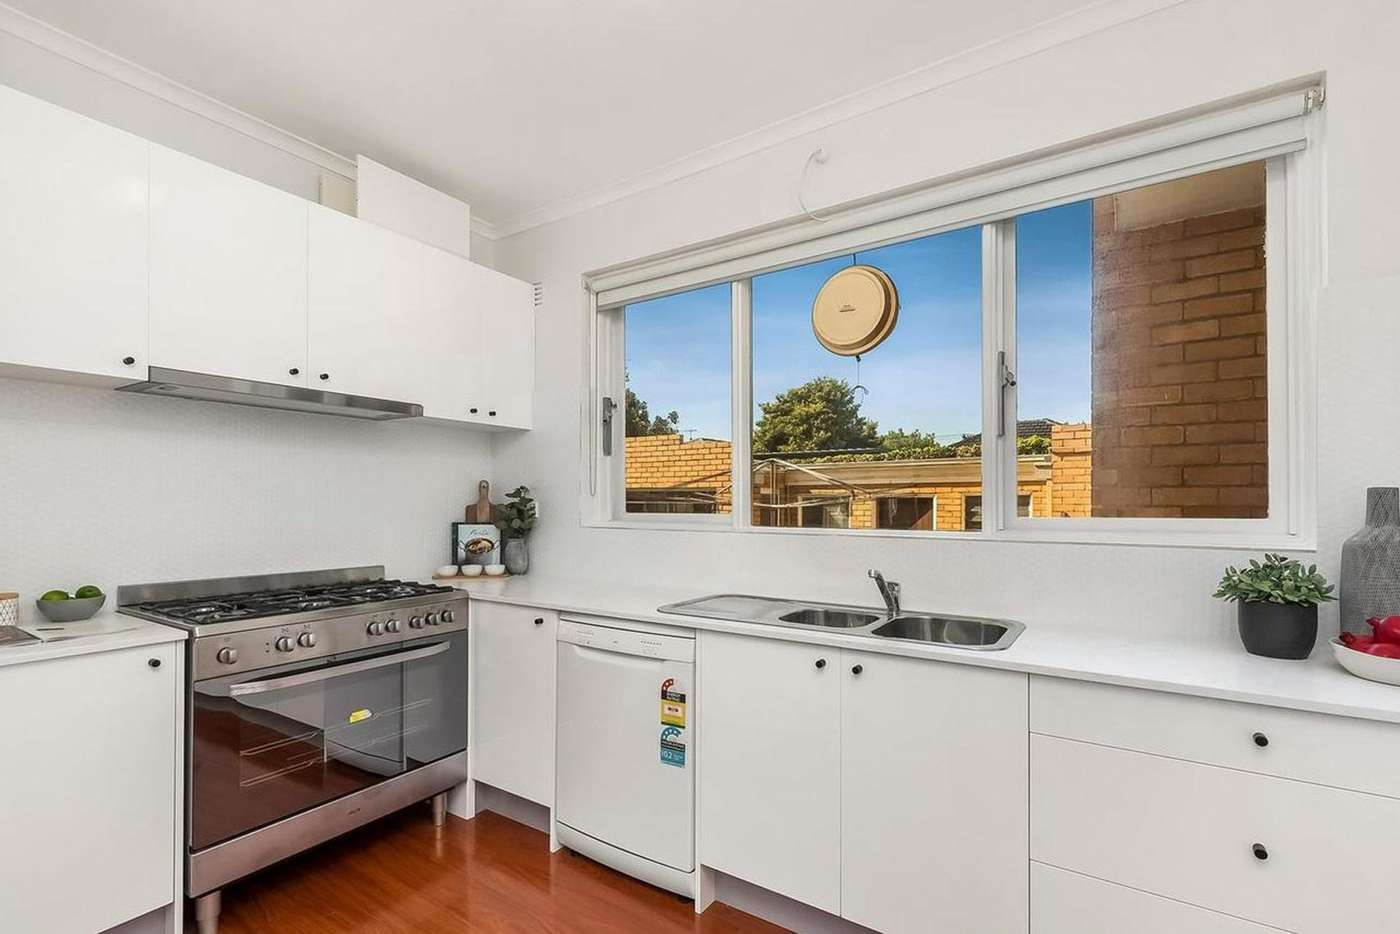 Main view of Homely apartment listing, 2/1 Garden Street, Elsternwick VIC 3185